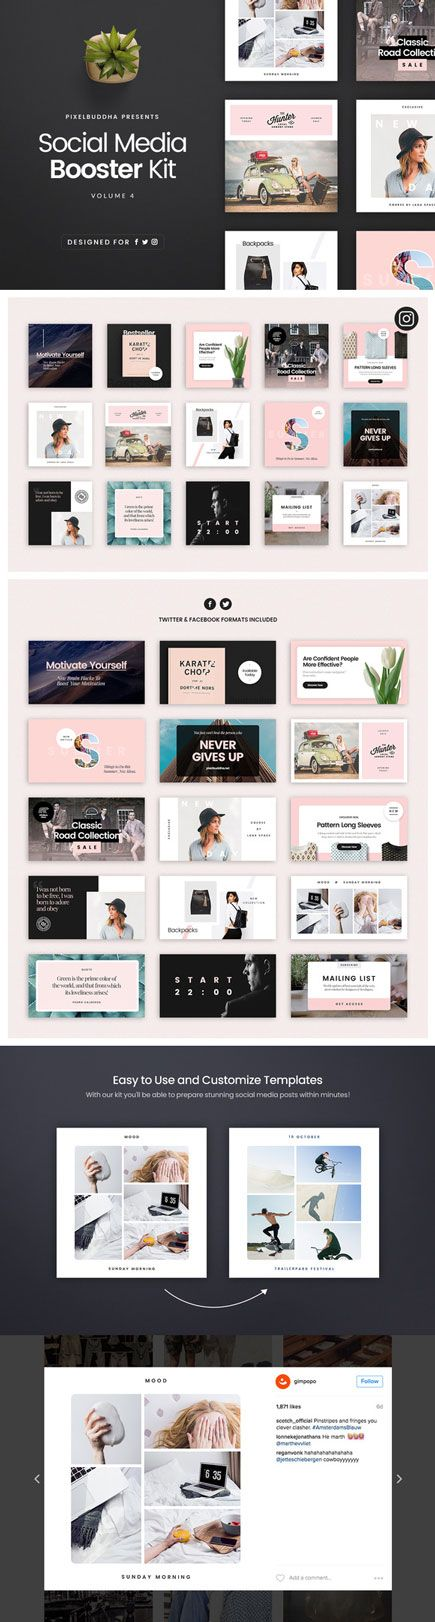 the #SocialMedia Booster Kit brings you the brand-new style: new colors, grids, and fonts. There is everything you need to fill your social media with impressive, standing out publications. #Instagram